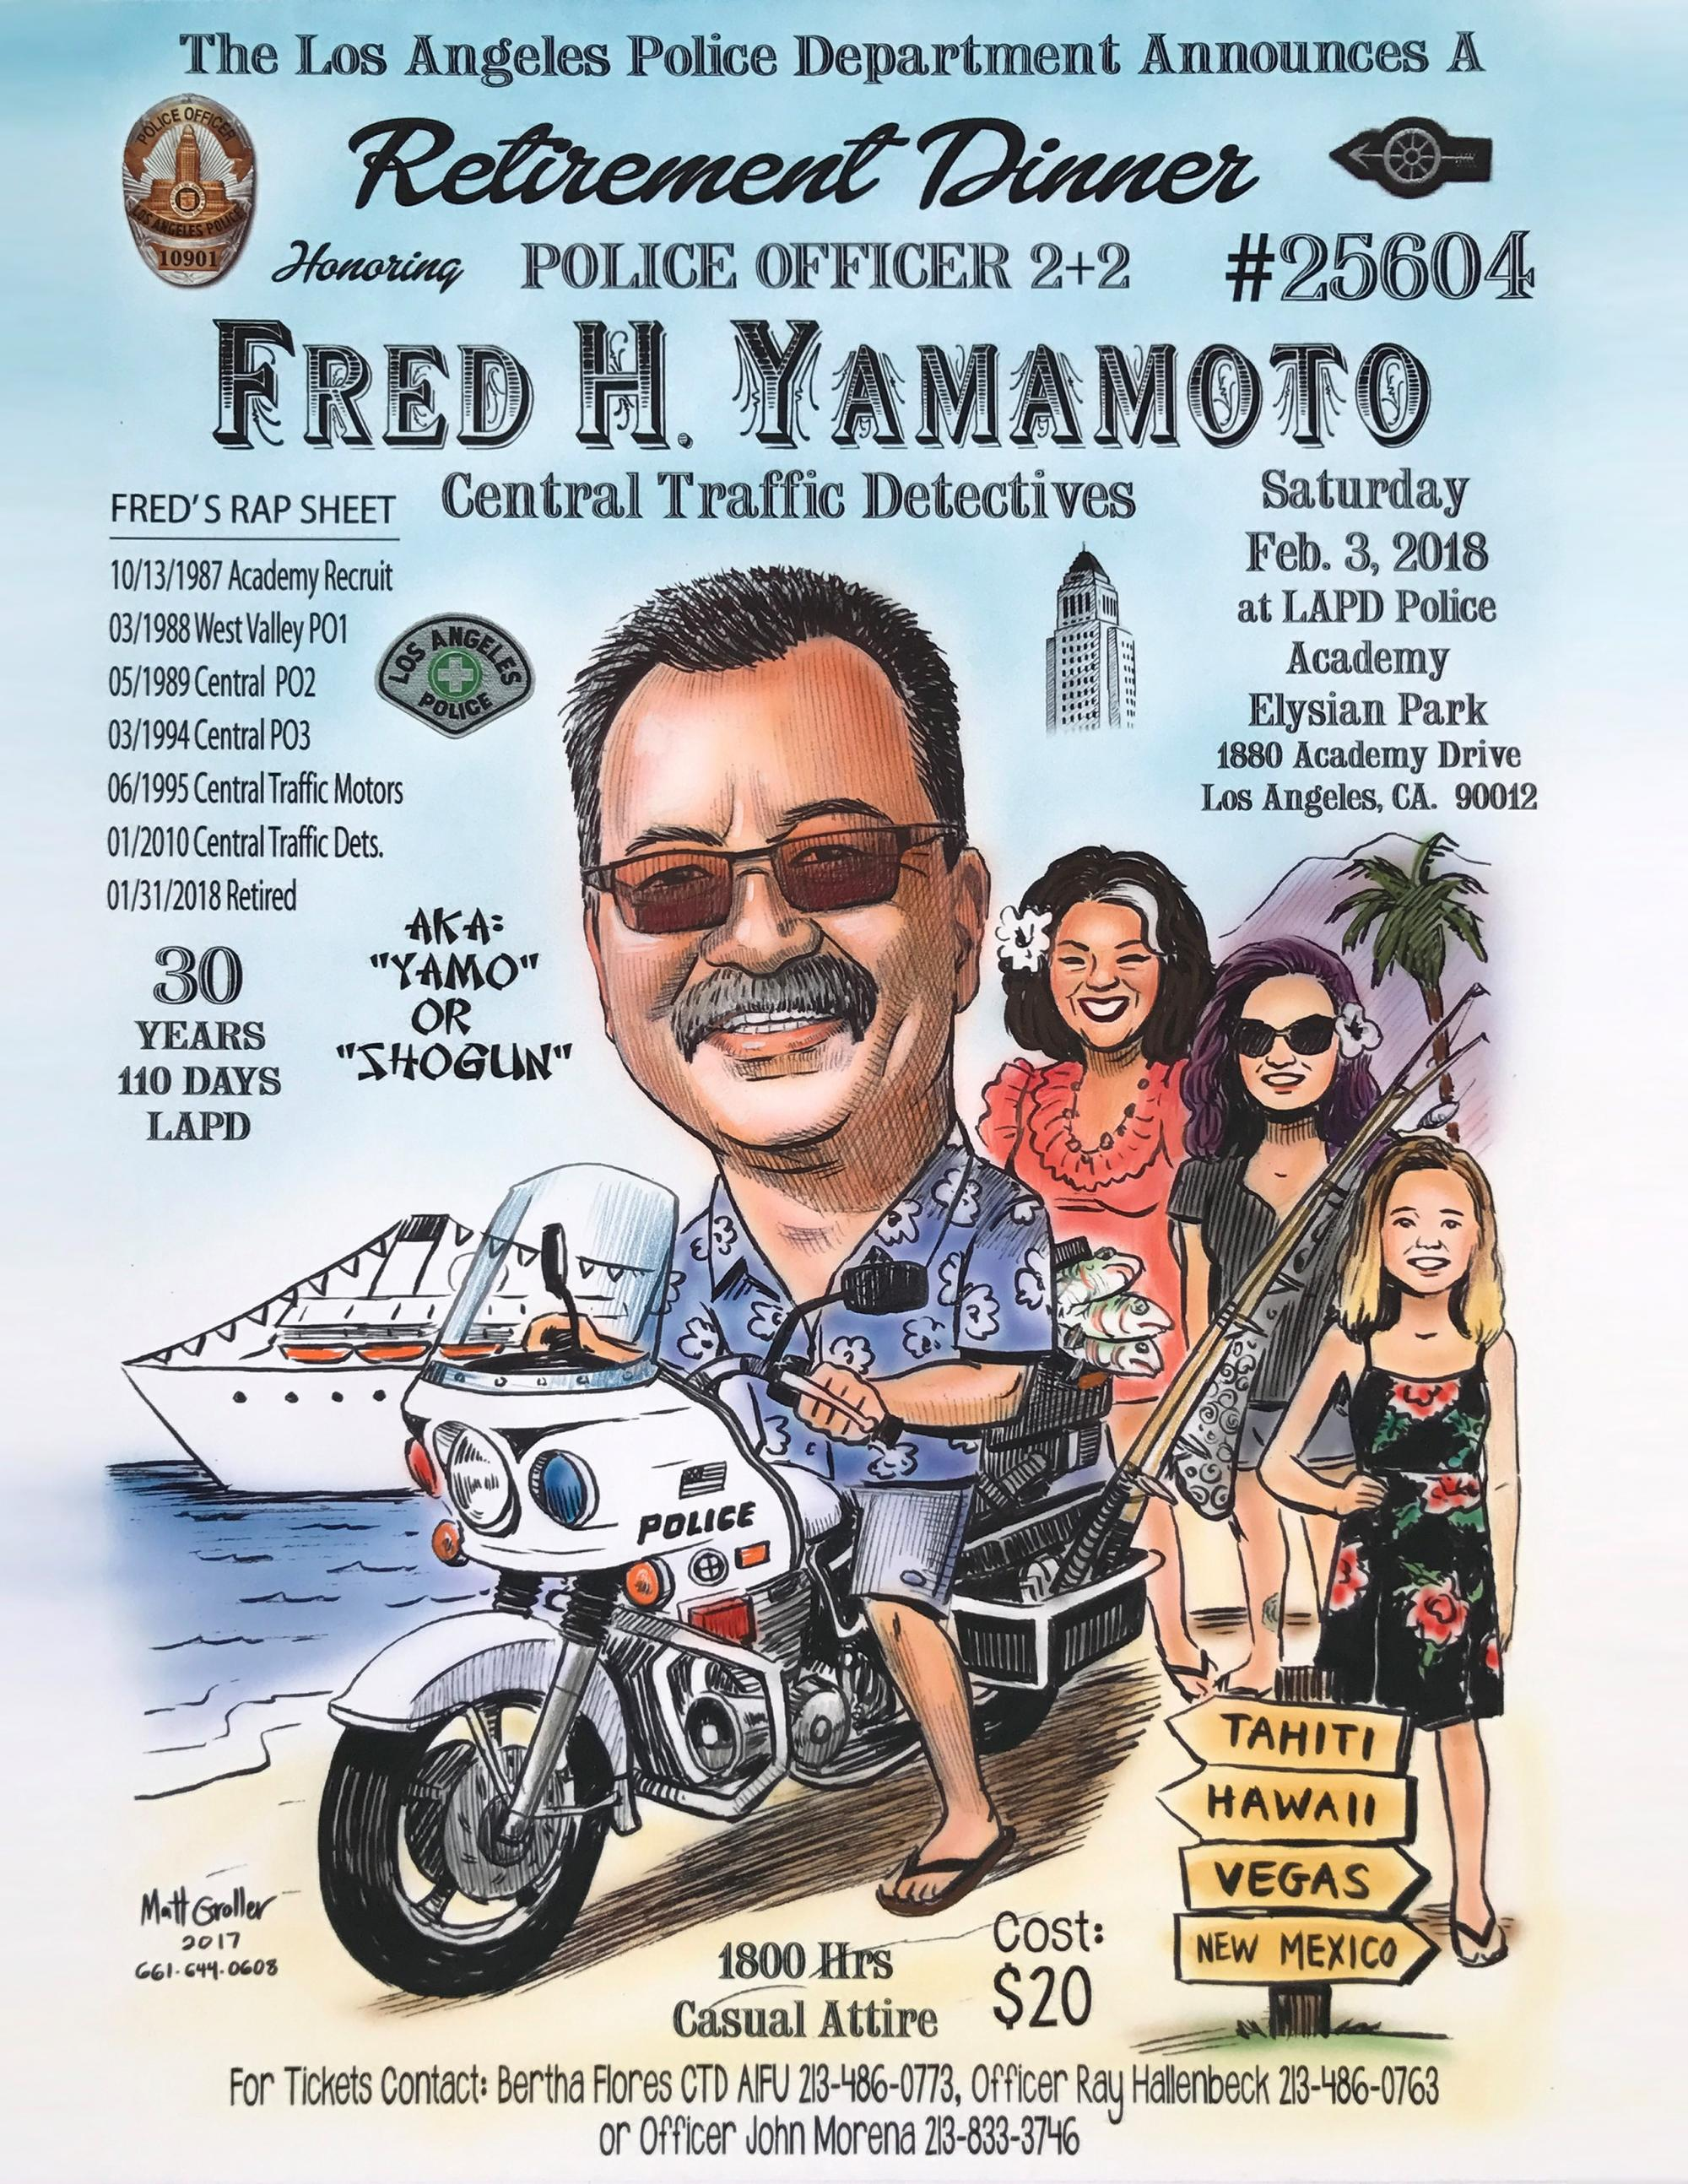 Fred Yamamoto Retirement   LAPPL - Los Angeles Police Protective League